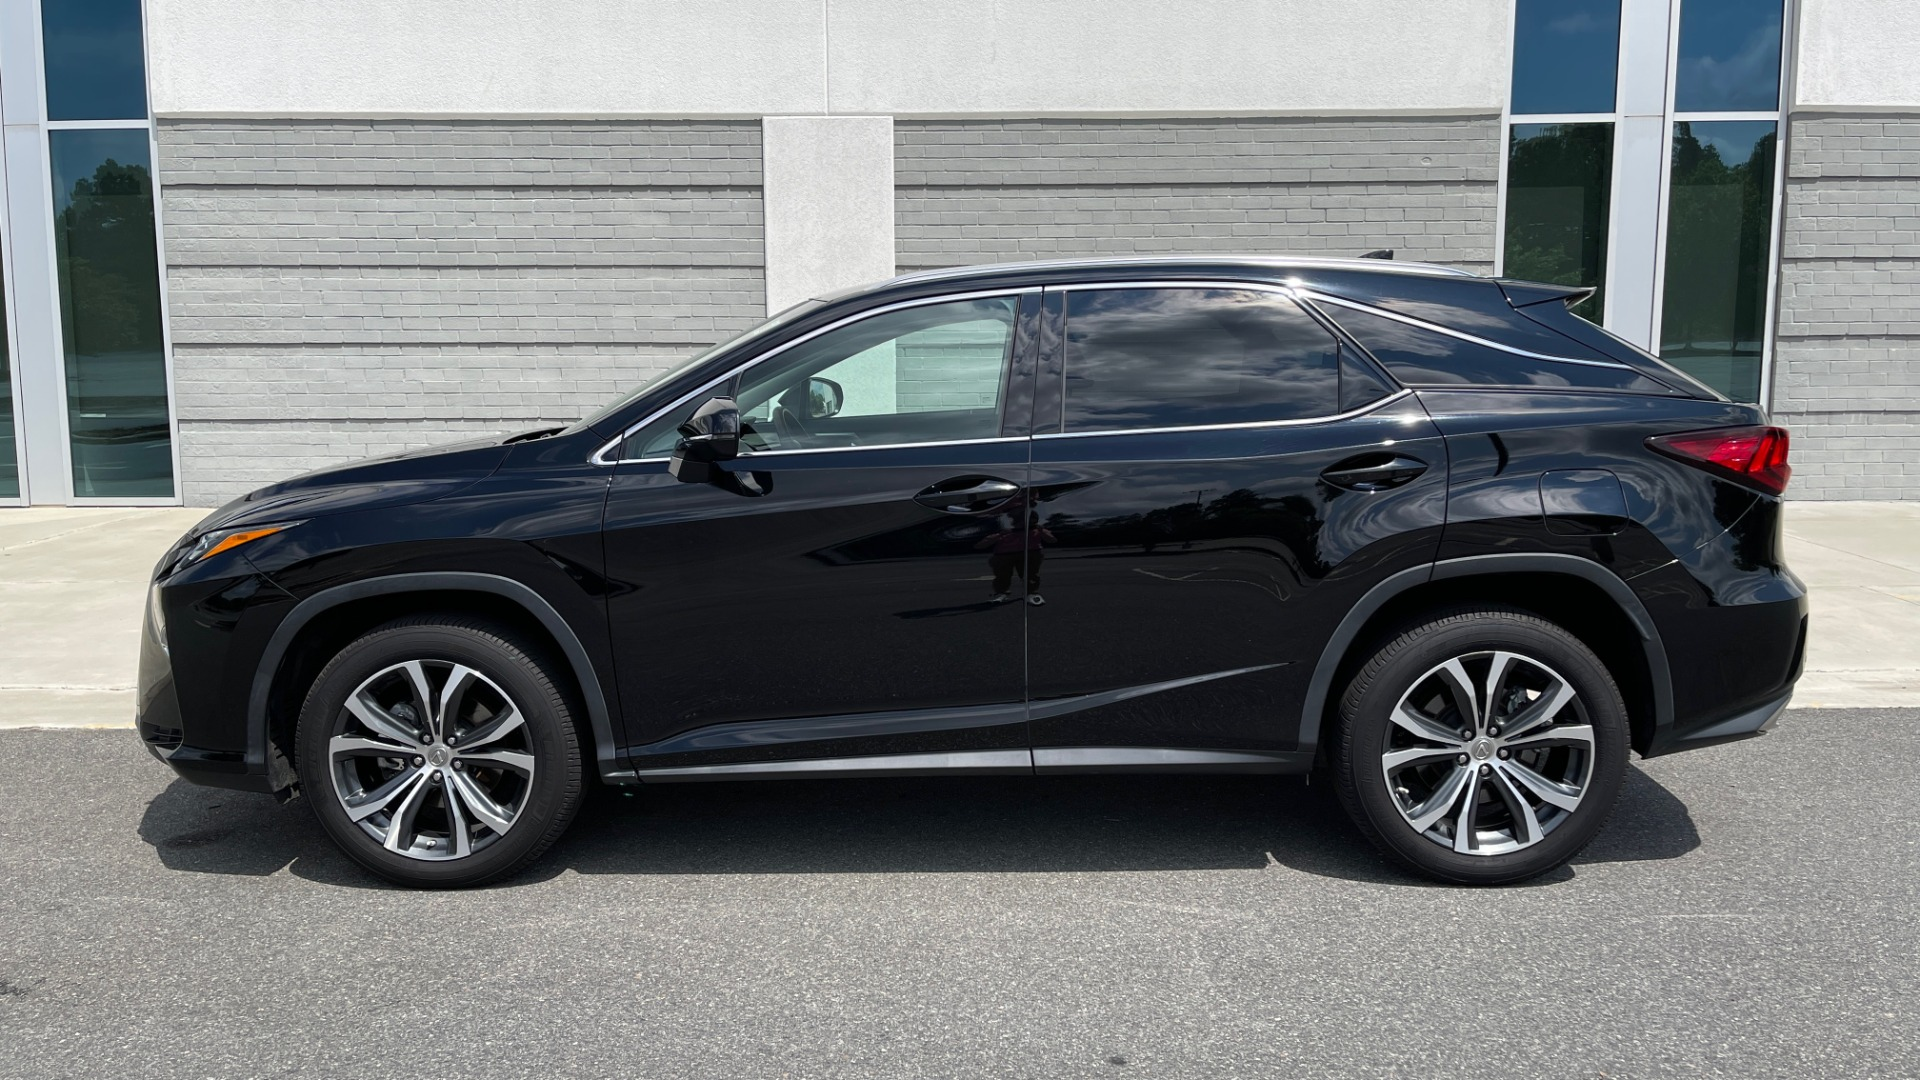 Used 2016 Lexus RX 350 PREMIUM / NAV / SUNROOF / BSM / PARK ASST / REARVIEW for sale $29,495 at Formula Imports in Charlotte NC 28227 4